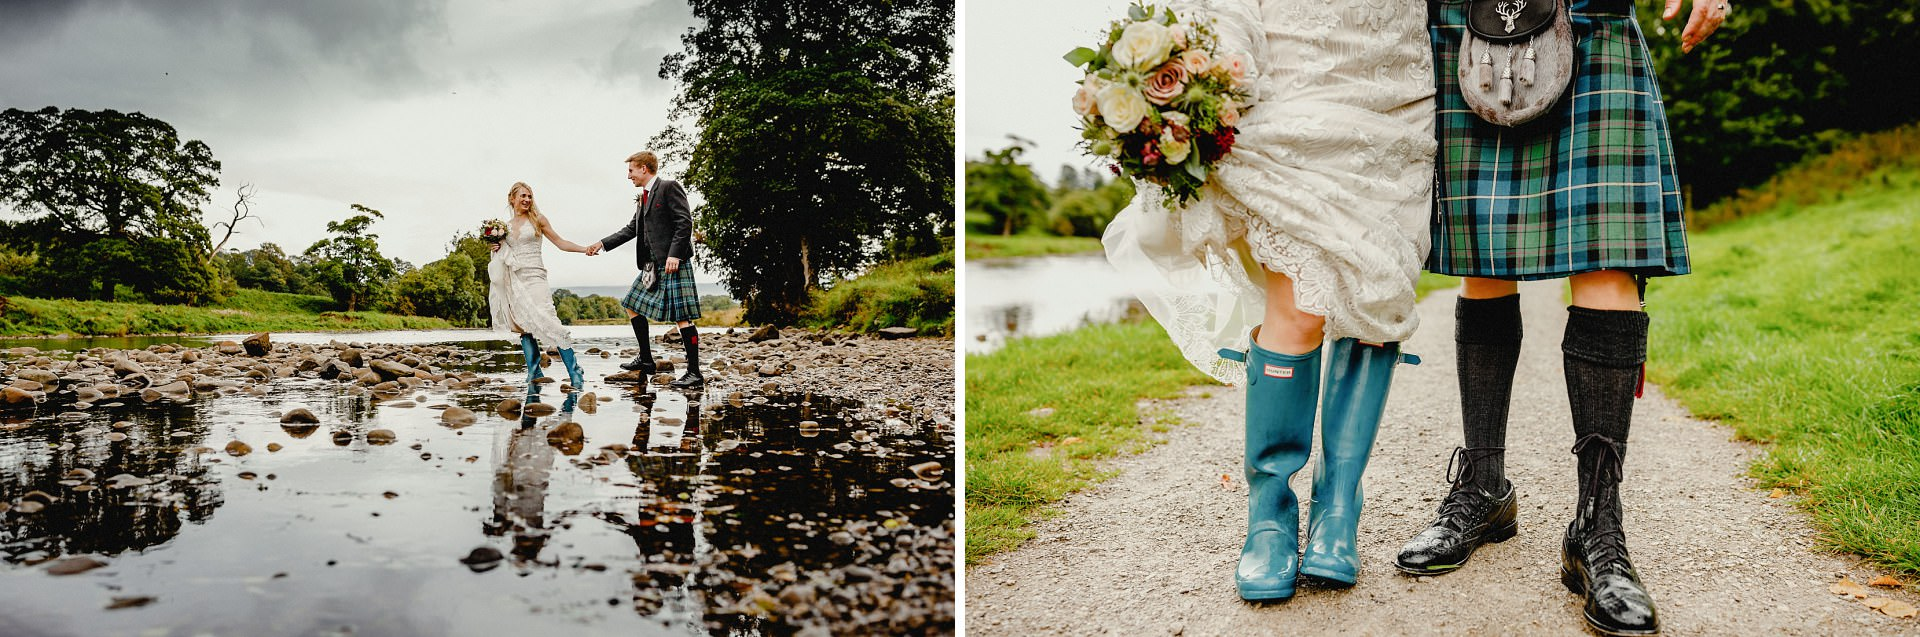 crossing the river, kilts, wedding wellies